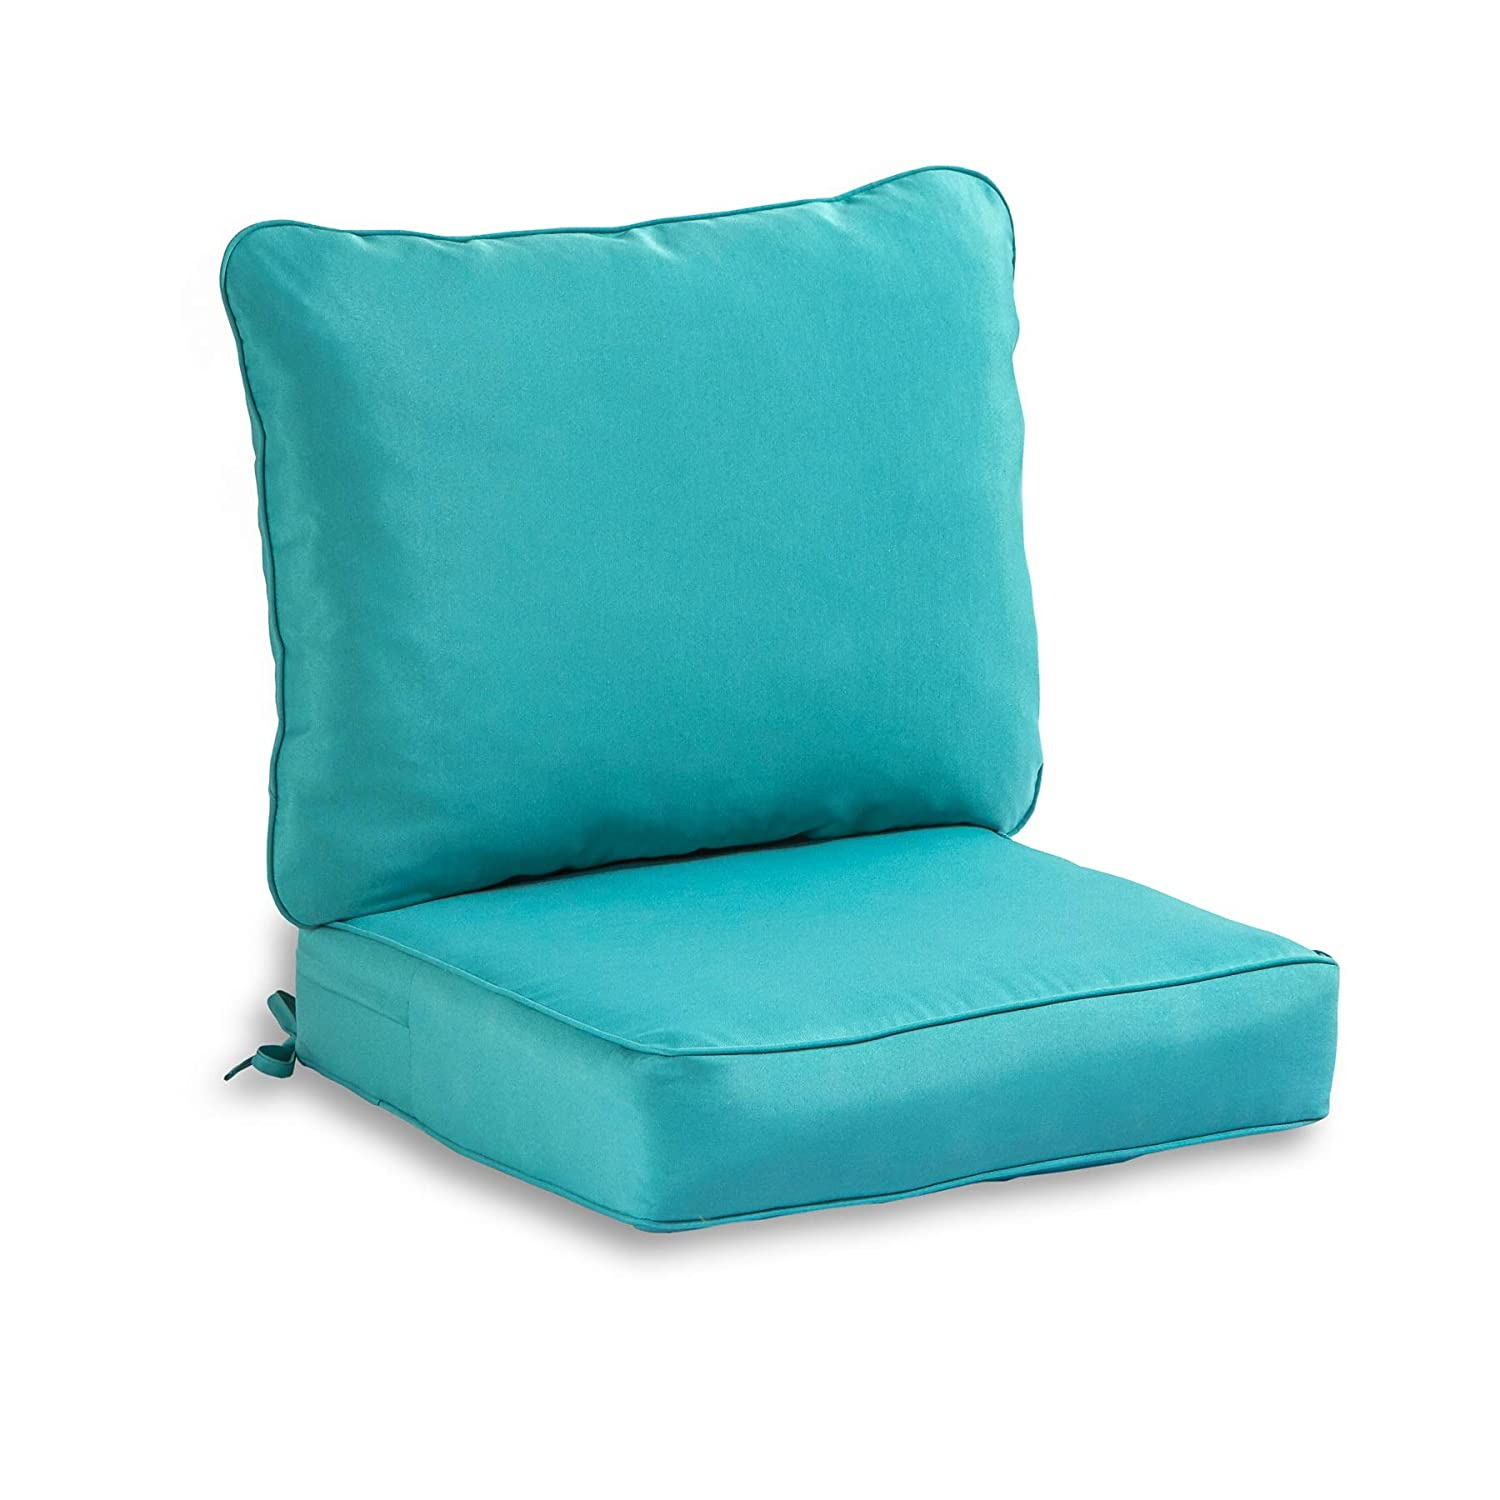 South Pine Porch AM7820-TEAL 2-Piece Outdoor Deep Seat Cushion Set, Solid Teal